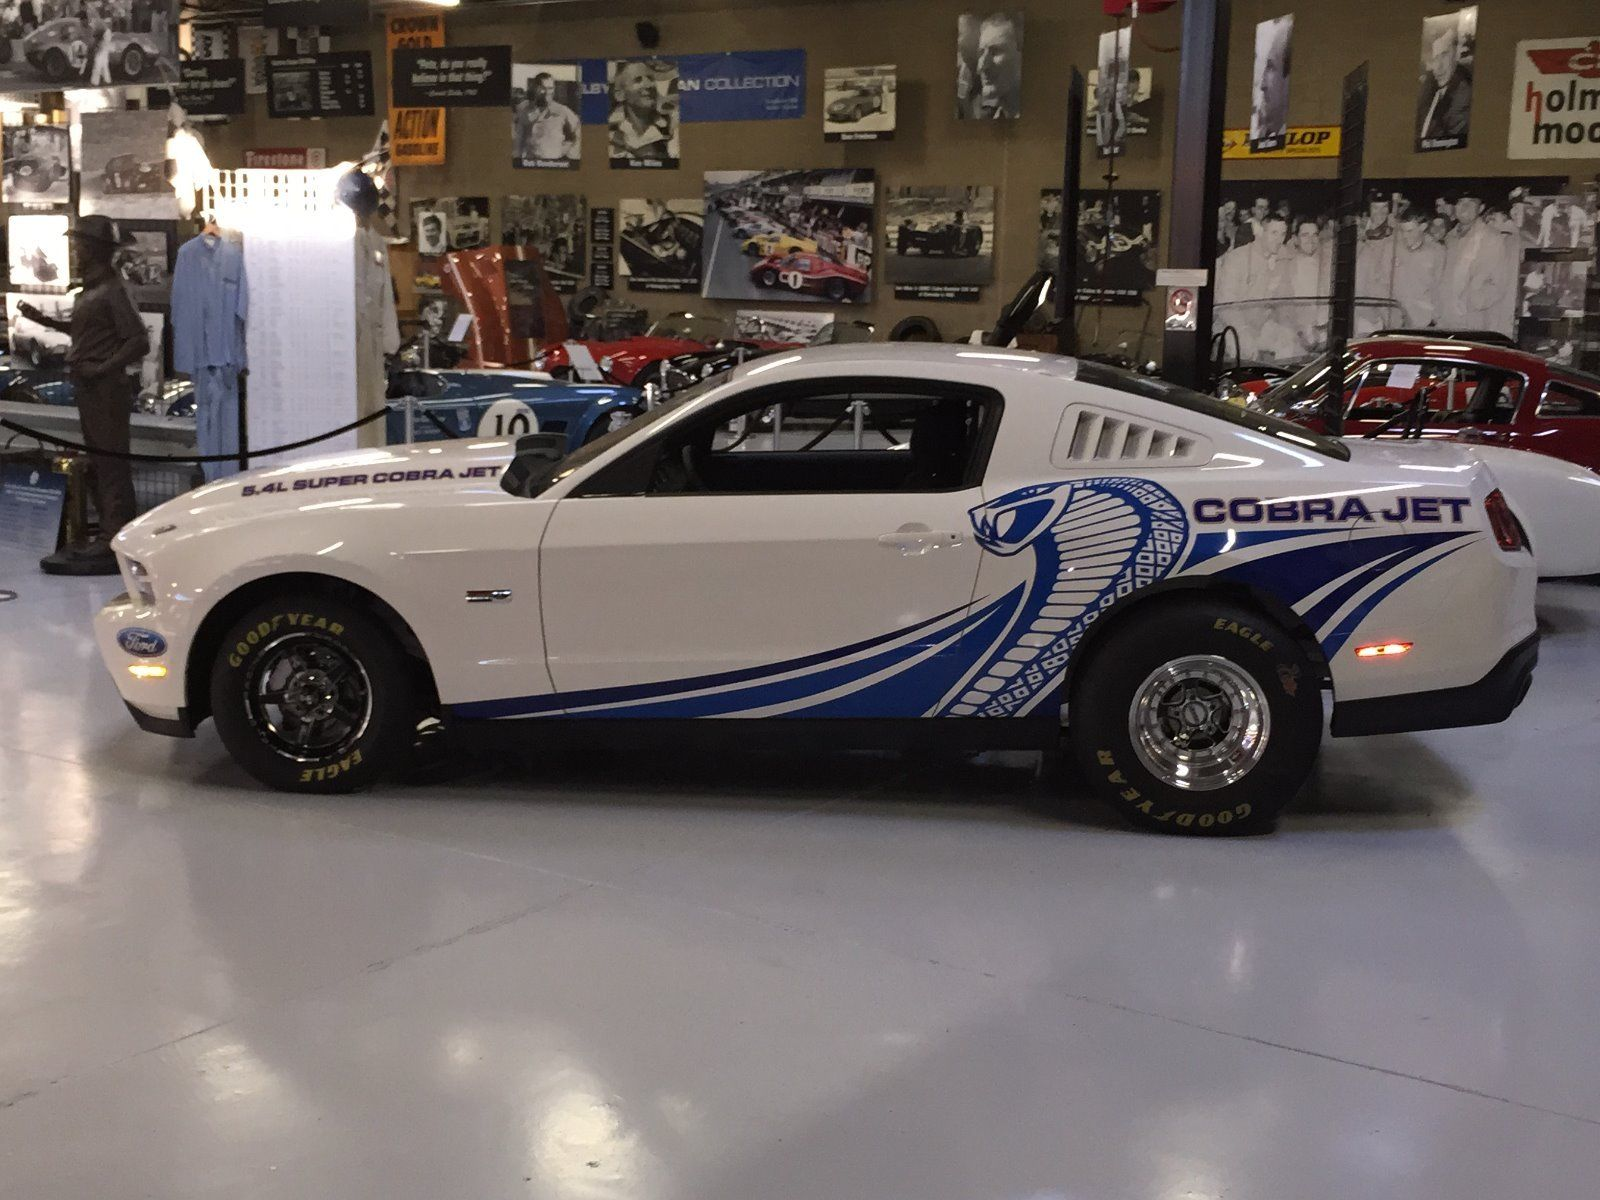 2012 ford mustang cobra jet drag race car for sale. Black Bedroom Furniture Sets. Home Design Ideas